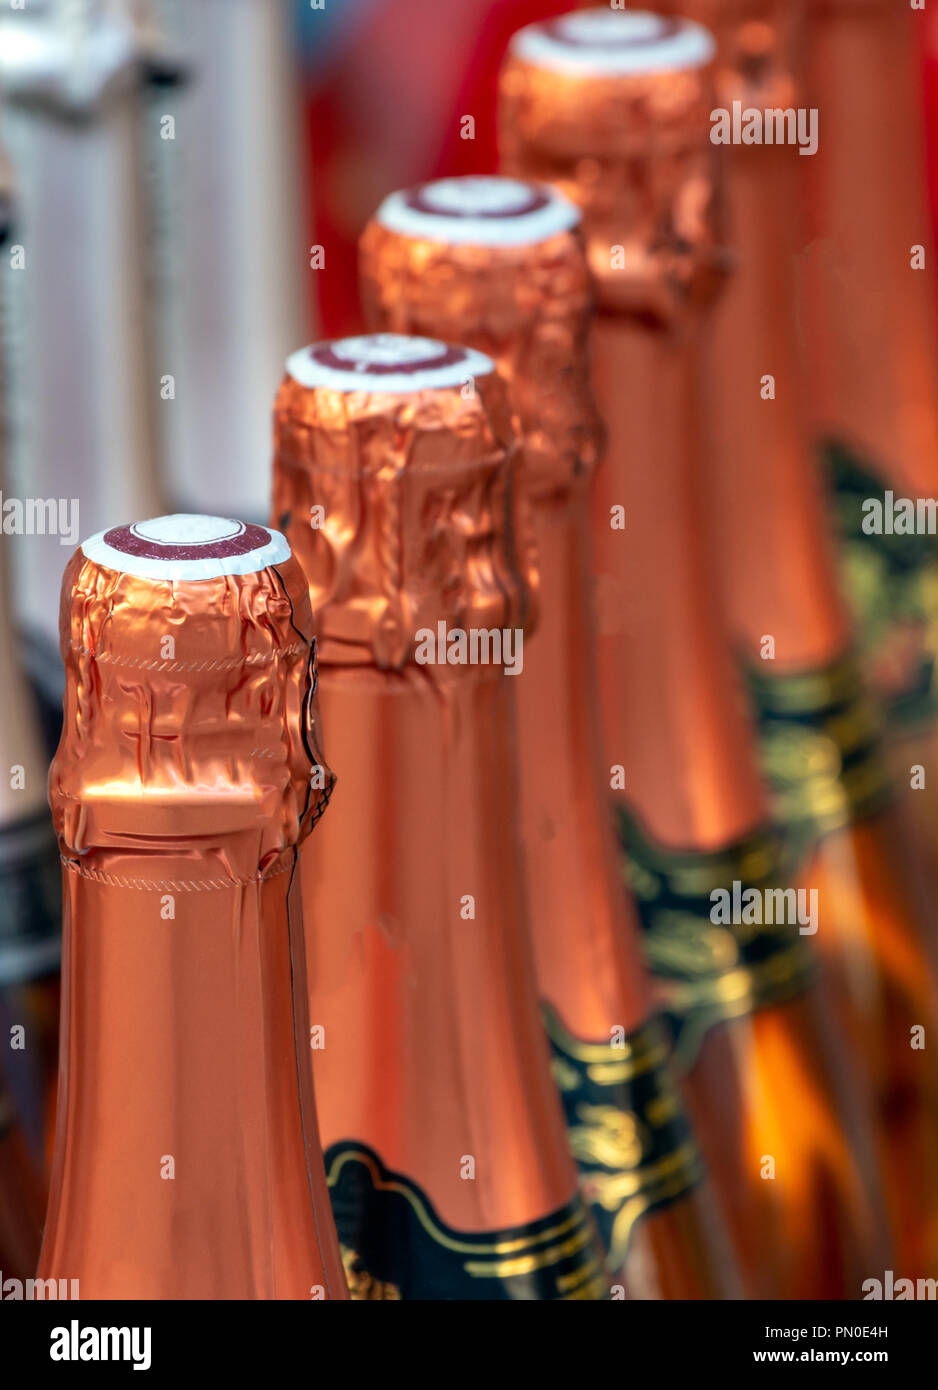 Closeup of a row of champagne bottle necks Stock Photo